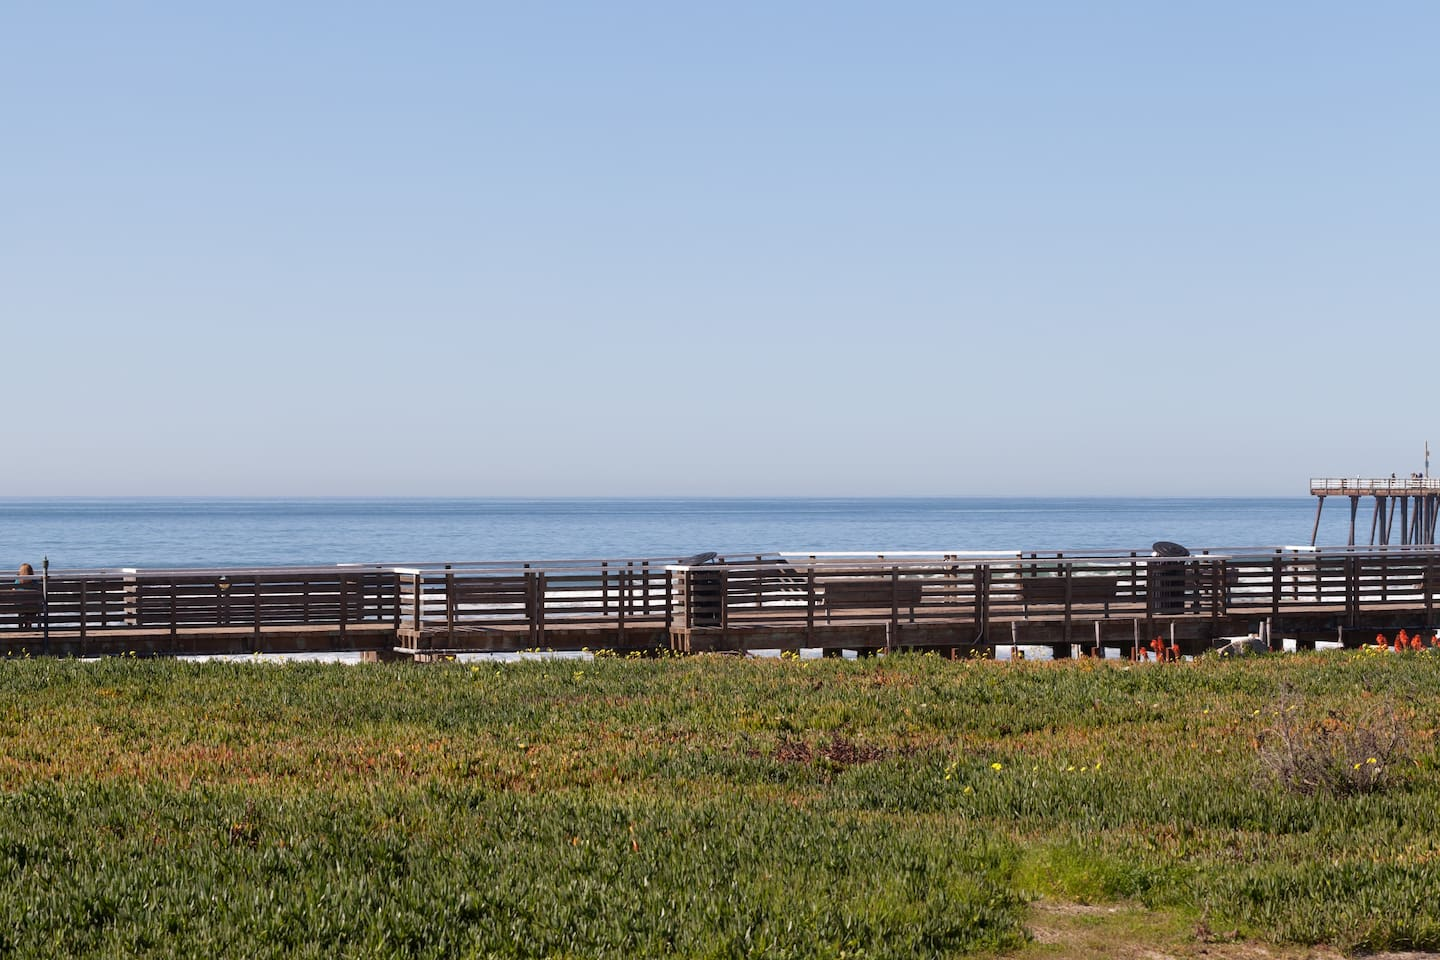 """Pismo Beach """"BOARDWALK""""  is about 200 feet to the Front Door of our beach house. The home is a few steps away from Pismo Beach Sand. You can hear the waves crashing upon the shore as you bask in the sun on the front porch. A great place to call home."""